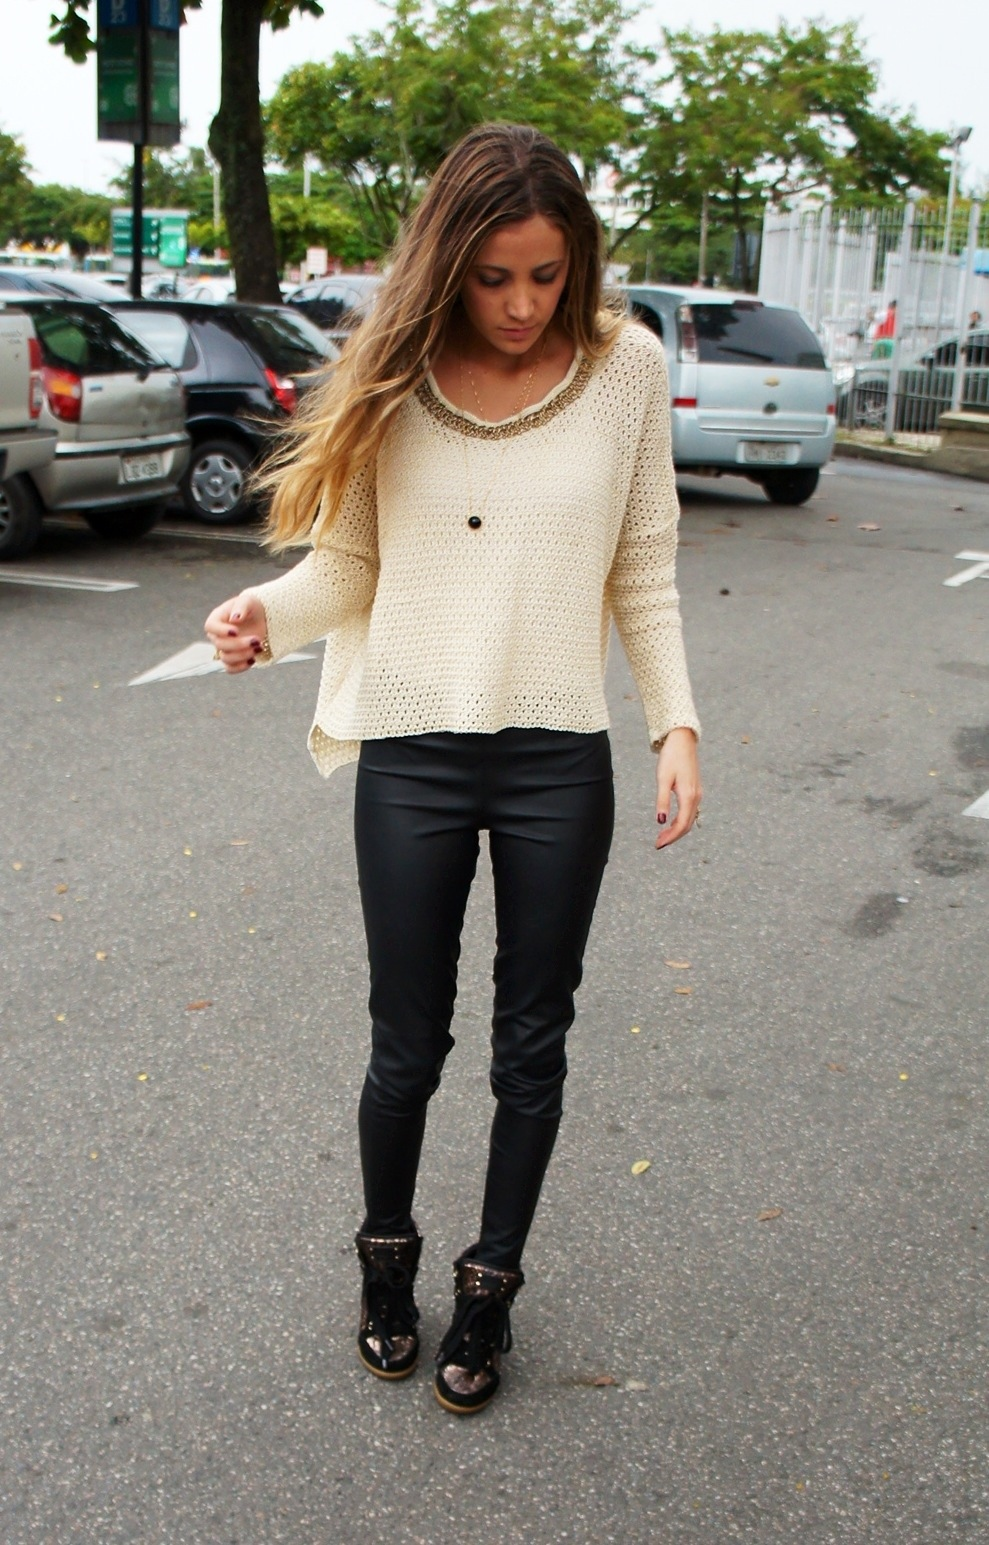 Legging + sneakers | Photography | Pinterest